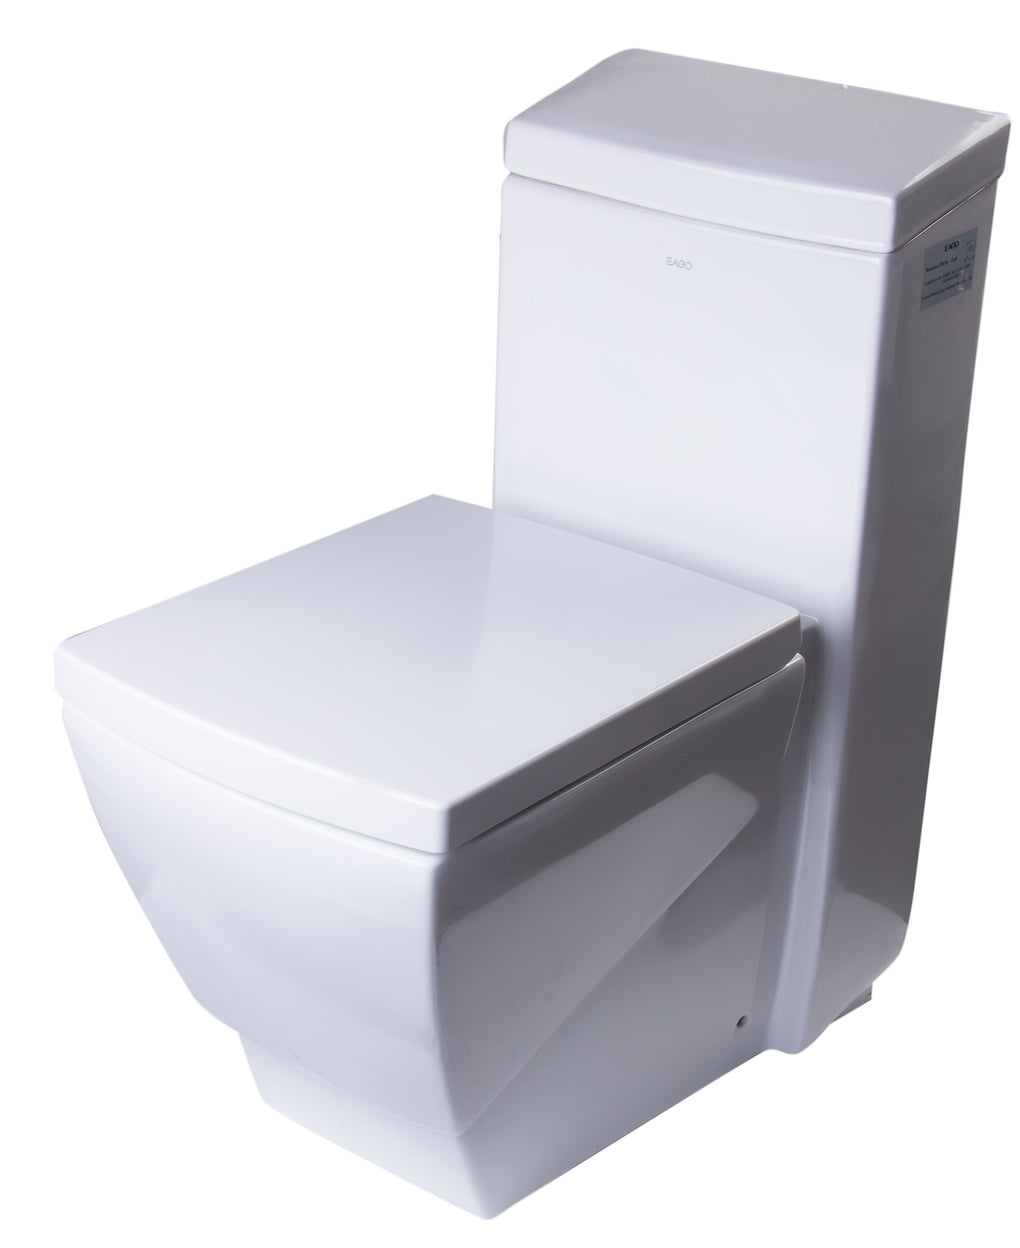 EAGO TB336 ONE PIECE HIGH EFFICIENCY LOW FLUSH ECO-FRIENDLY CERAMIC TOILET - FaucetMart